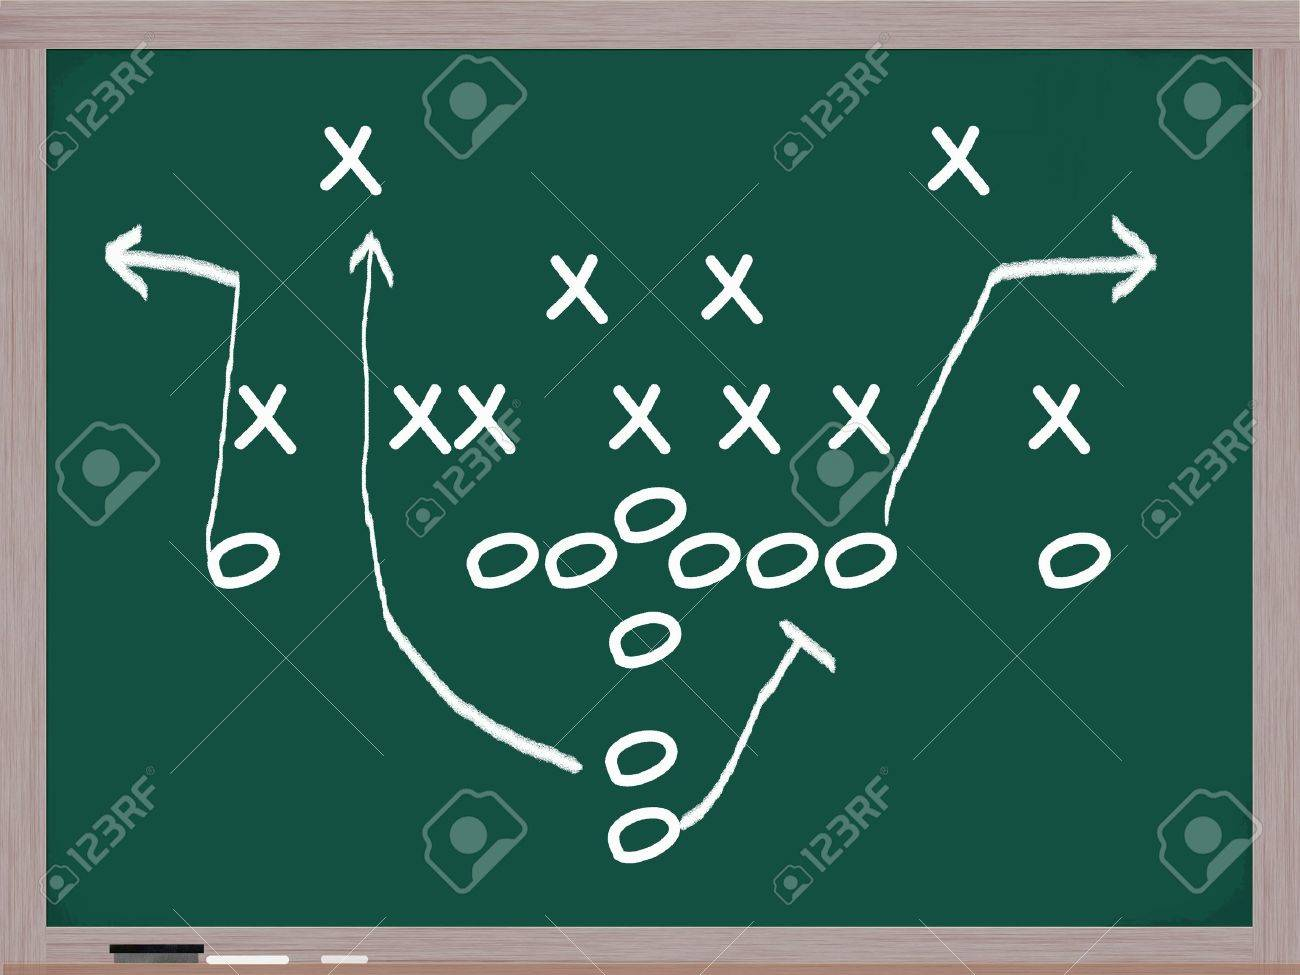 A Football Play Diagram On A Chalkboard In White Chalk Showing ...